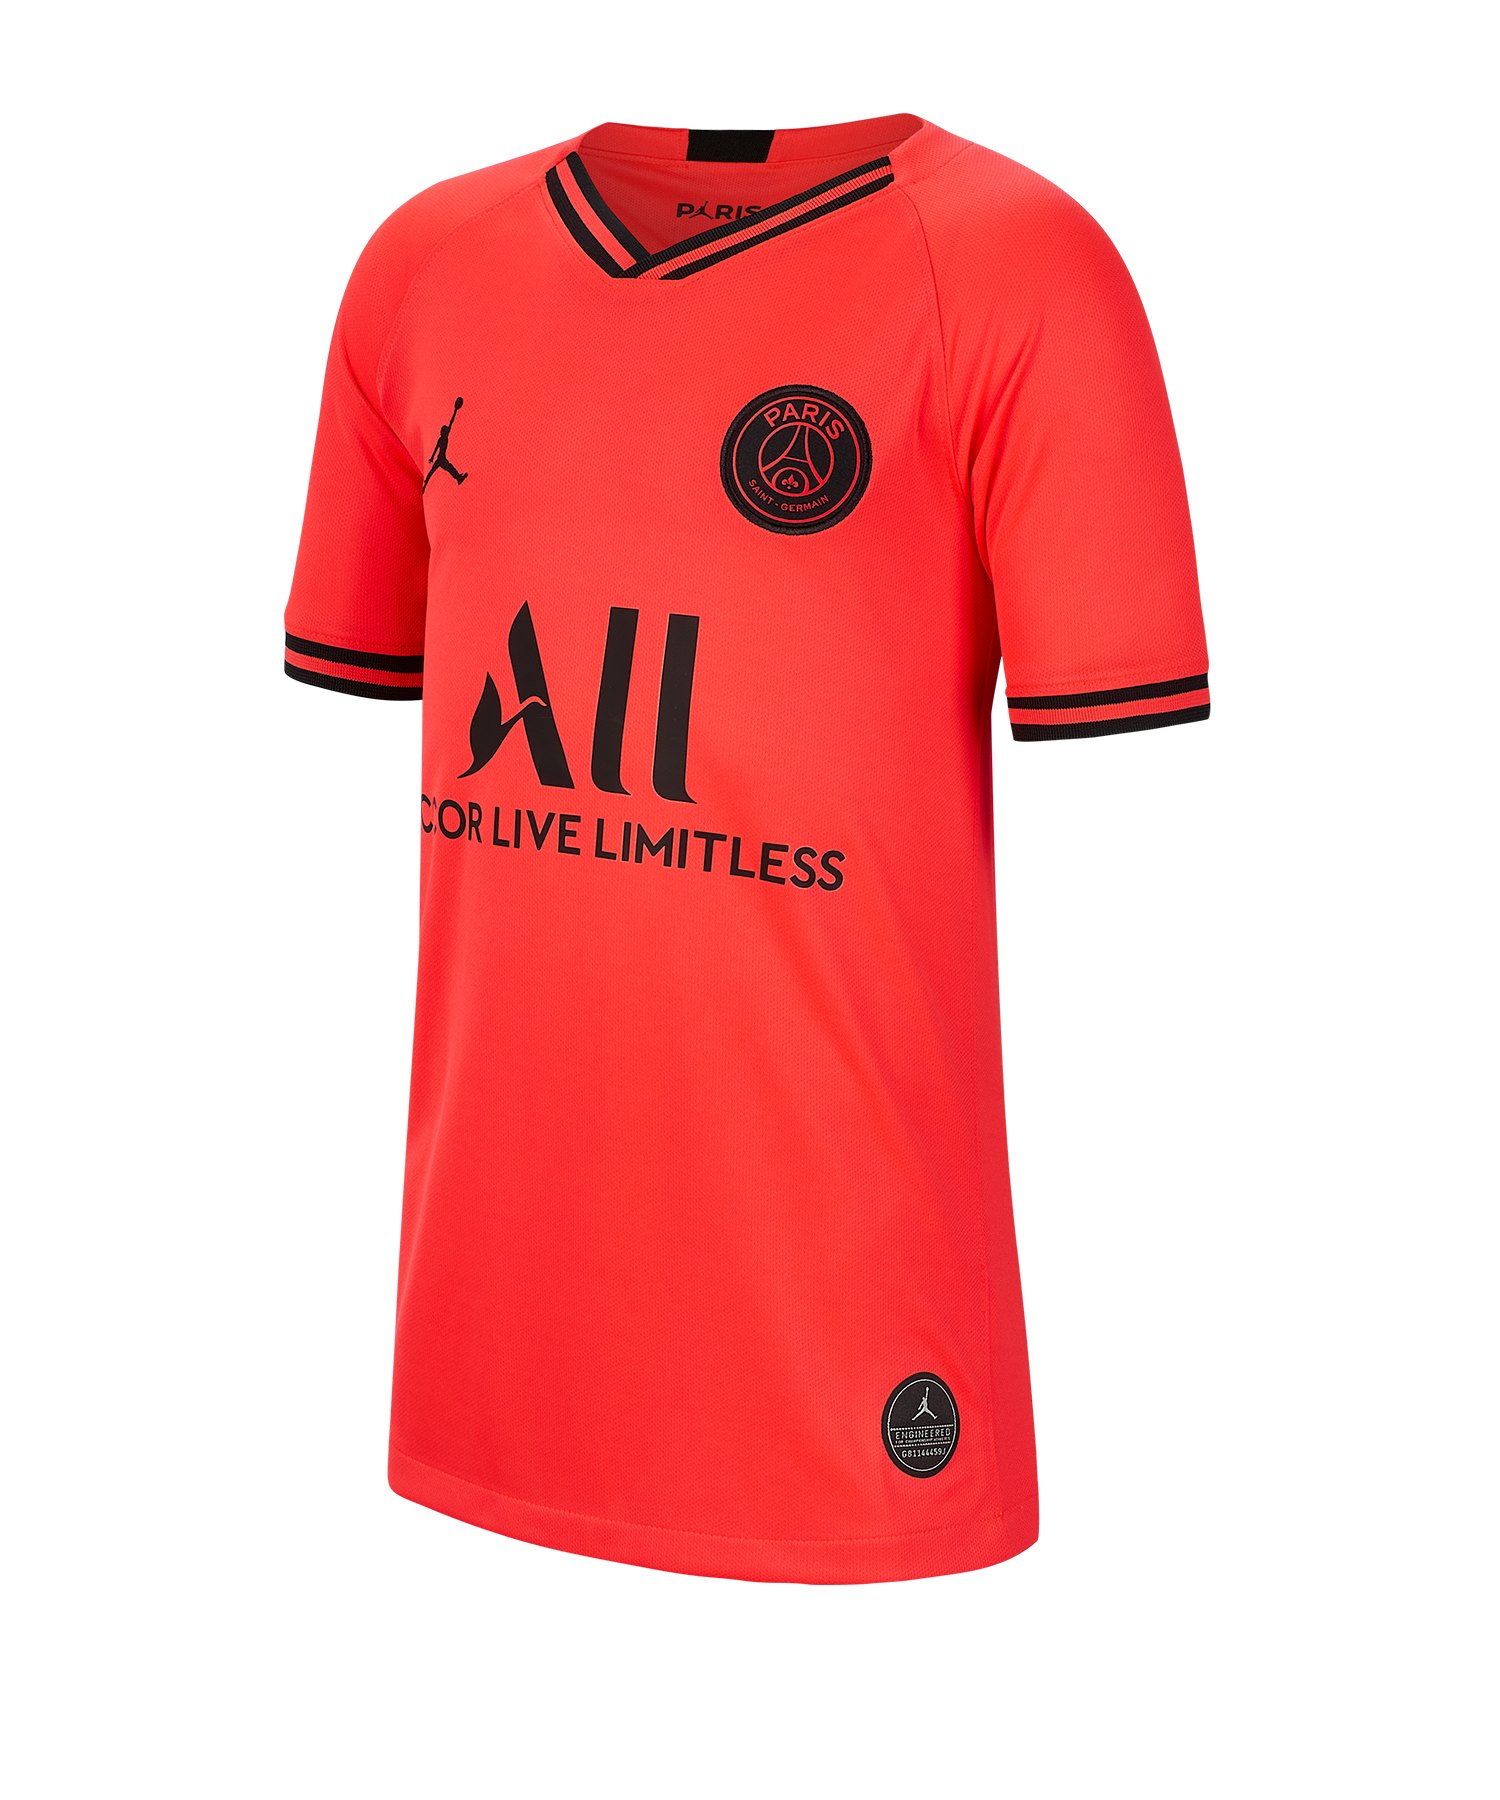 Jordan Paris St. Germain Trikot A 19/20 Kids F613 - orange